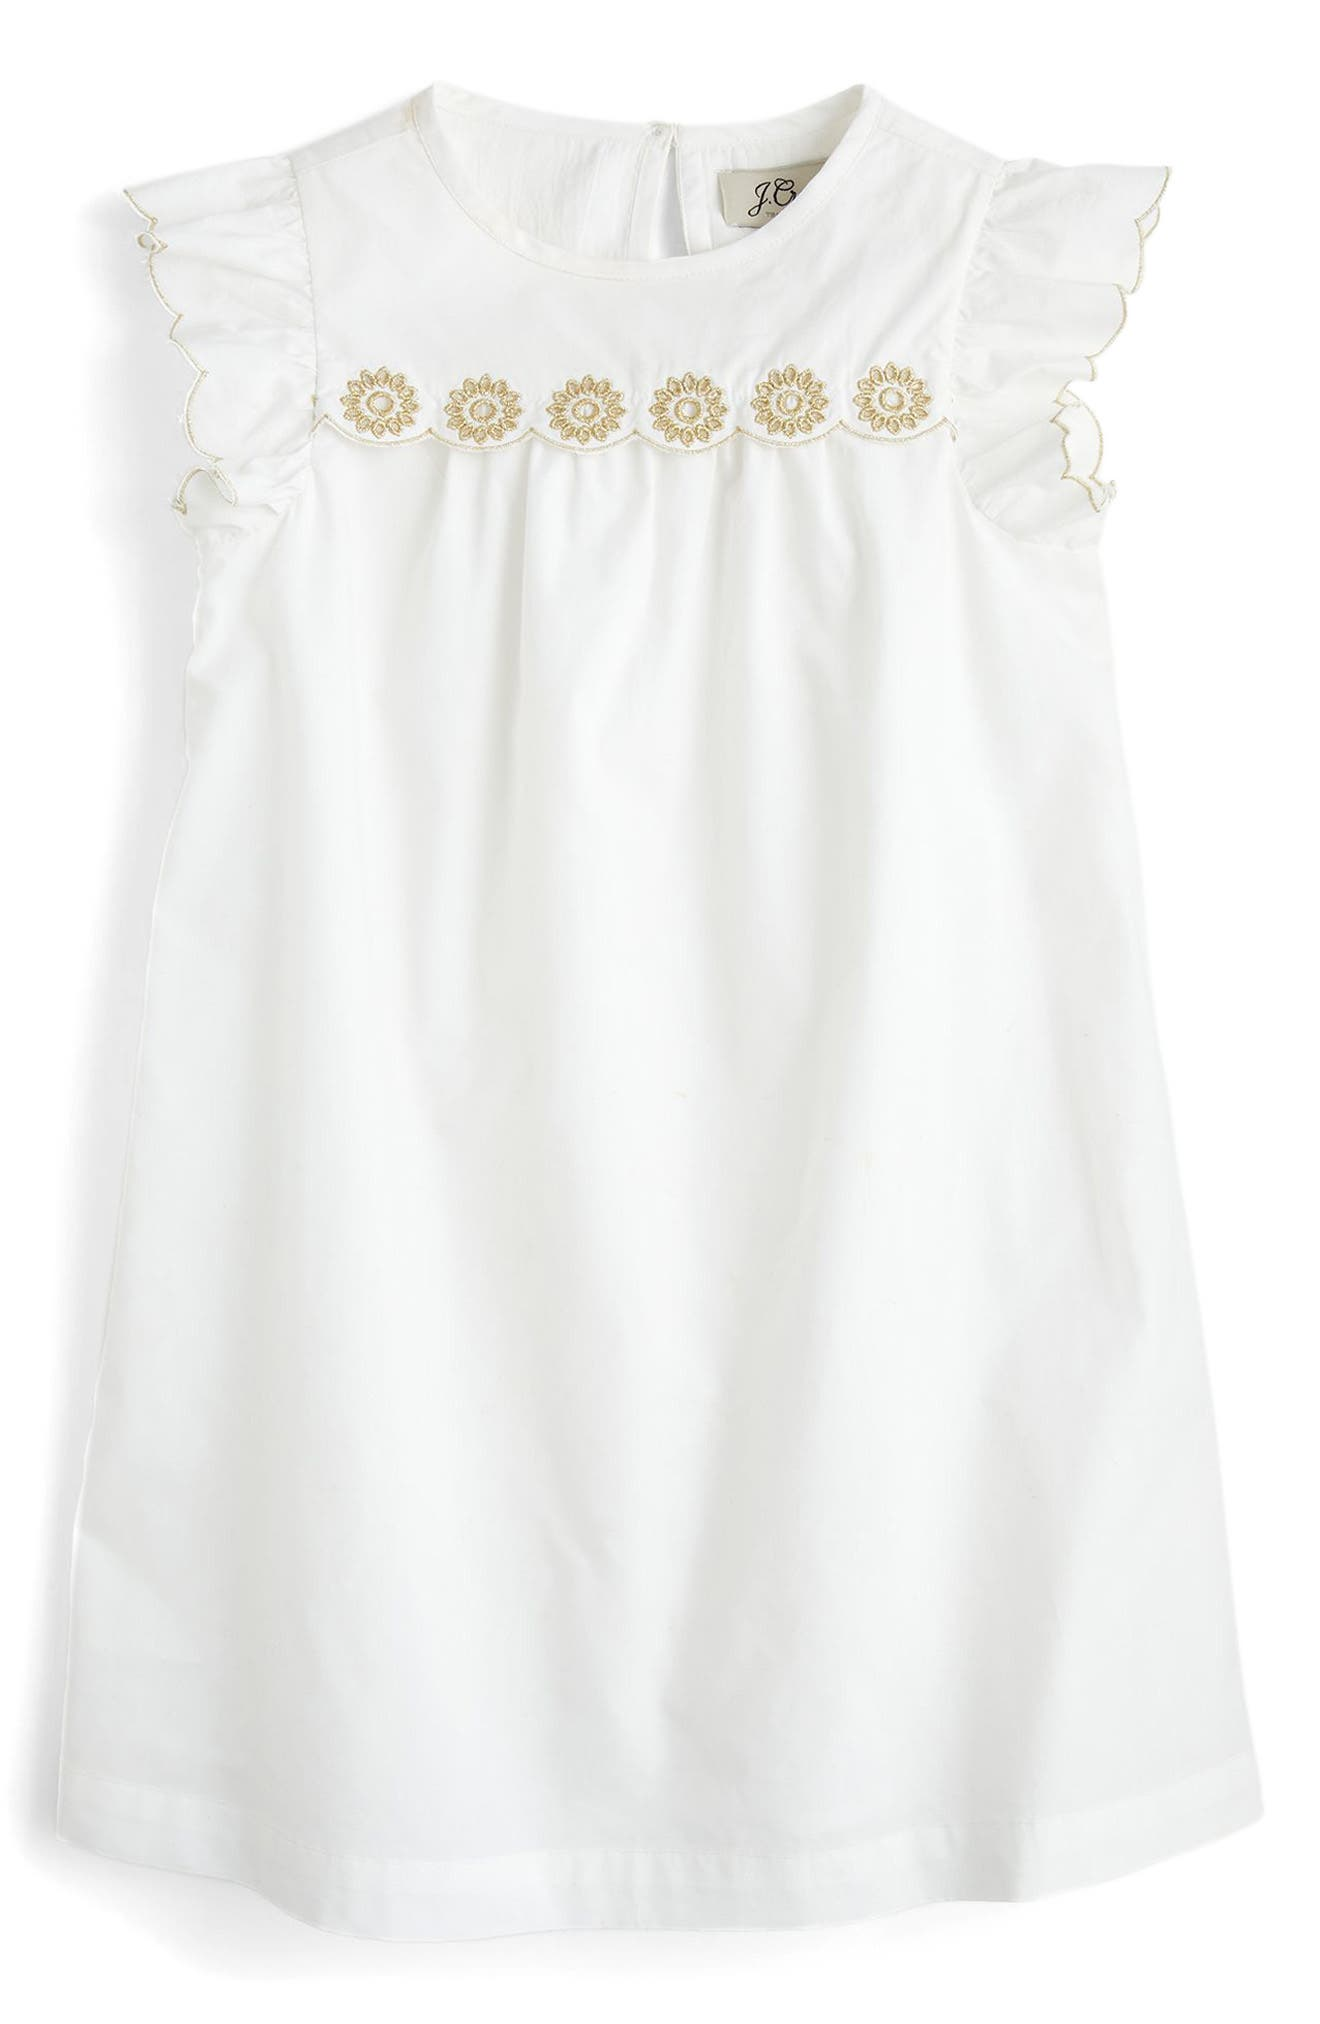 Floral Embroidered Shift Dress,                             Main thumbnail 1, color,                             100